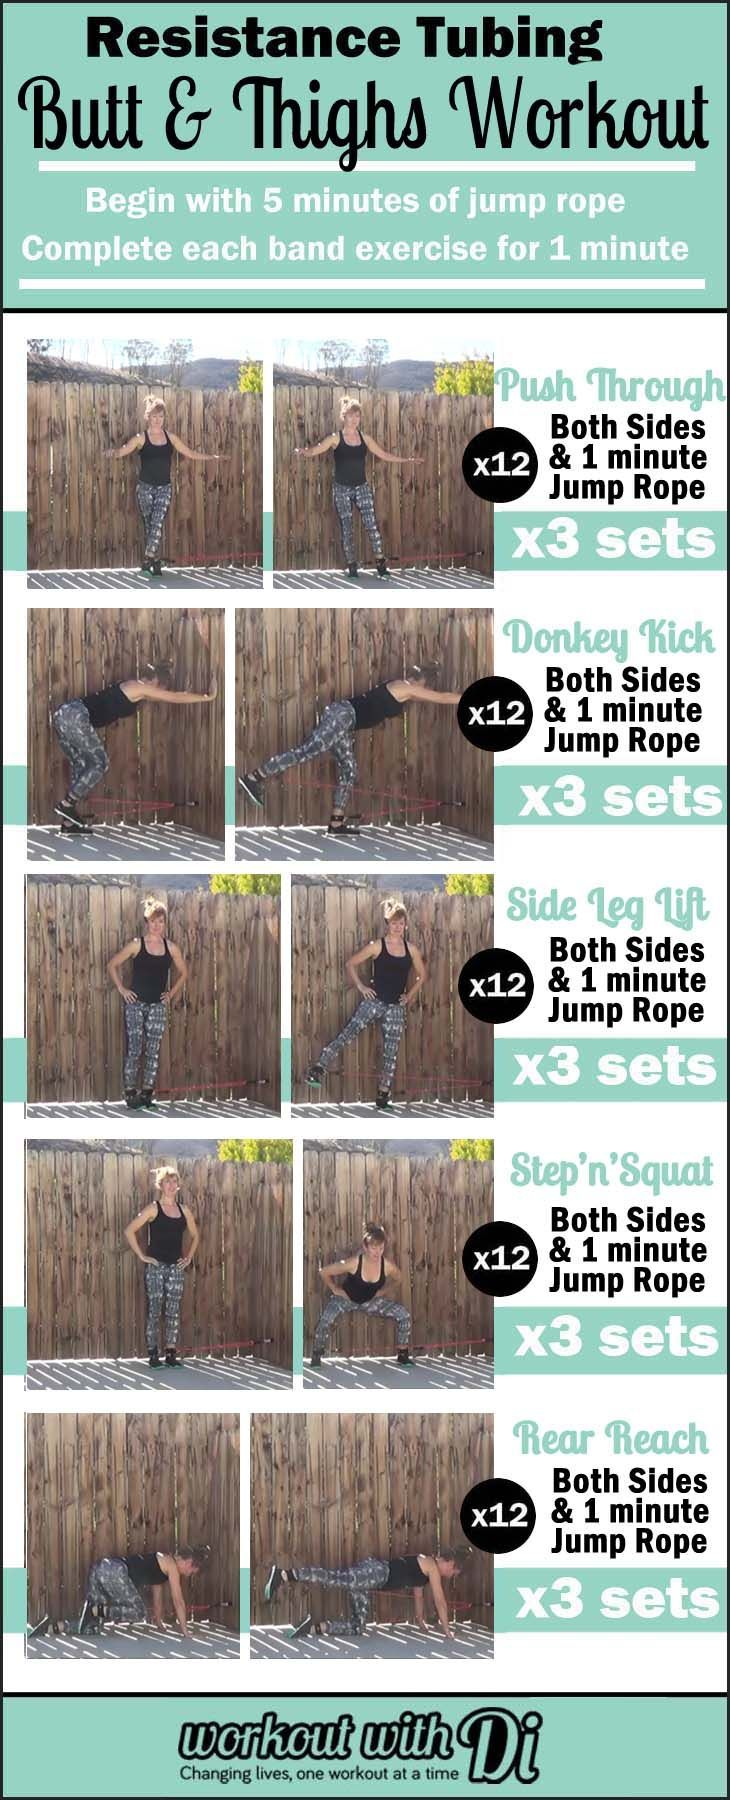 Looking to tighten and tone your booty? Try this butt and thigh interval workout using resistance bands.